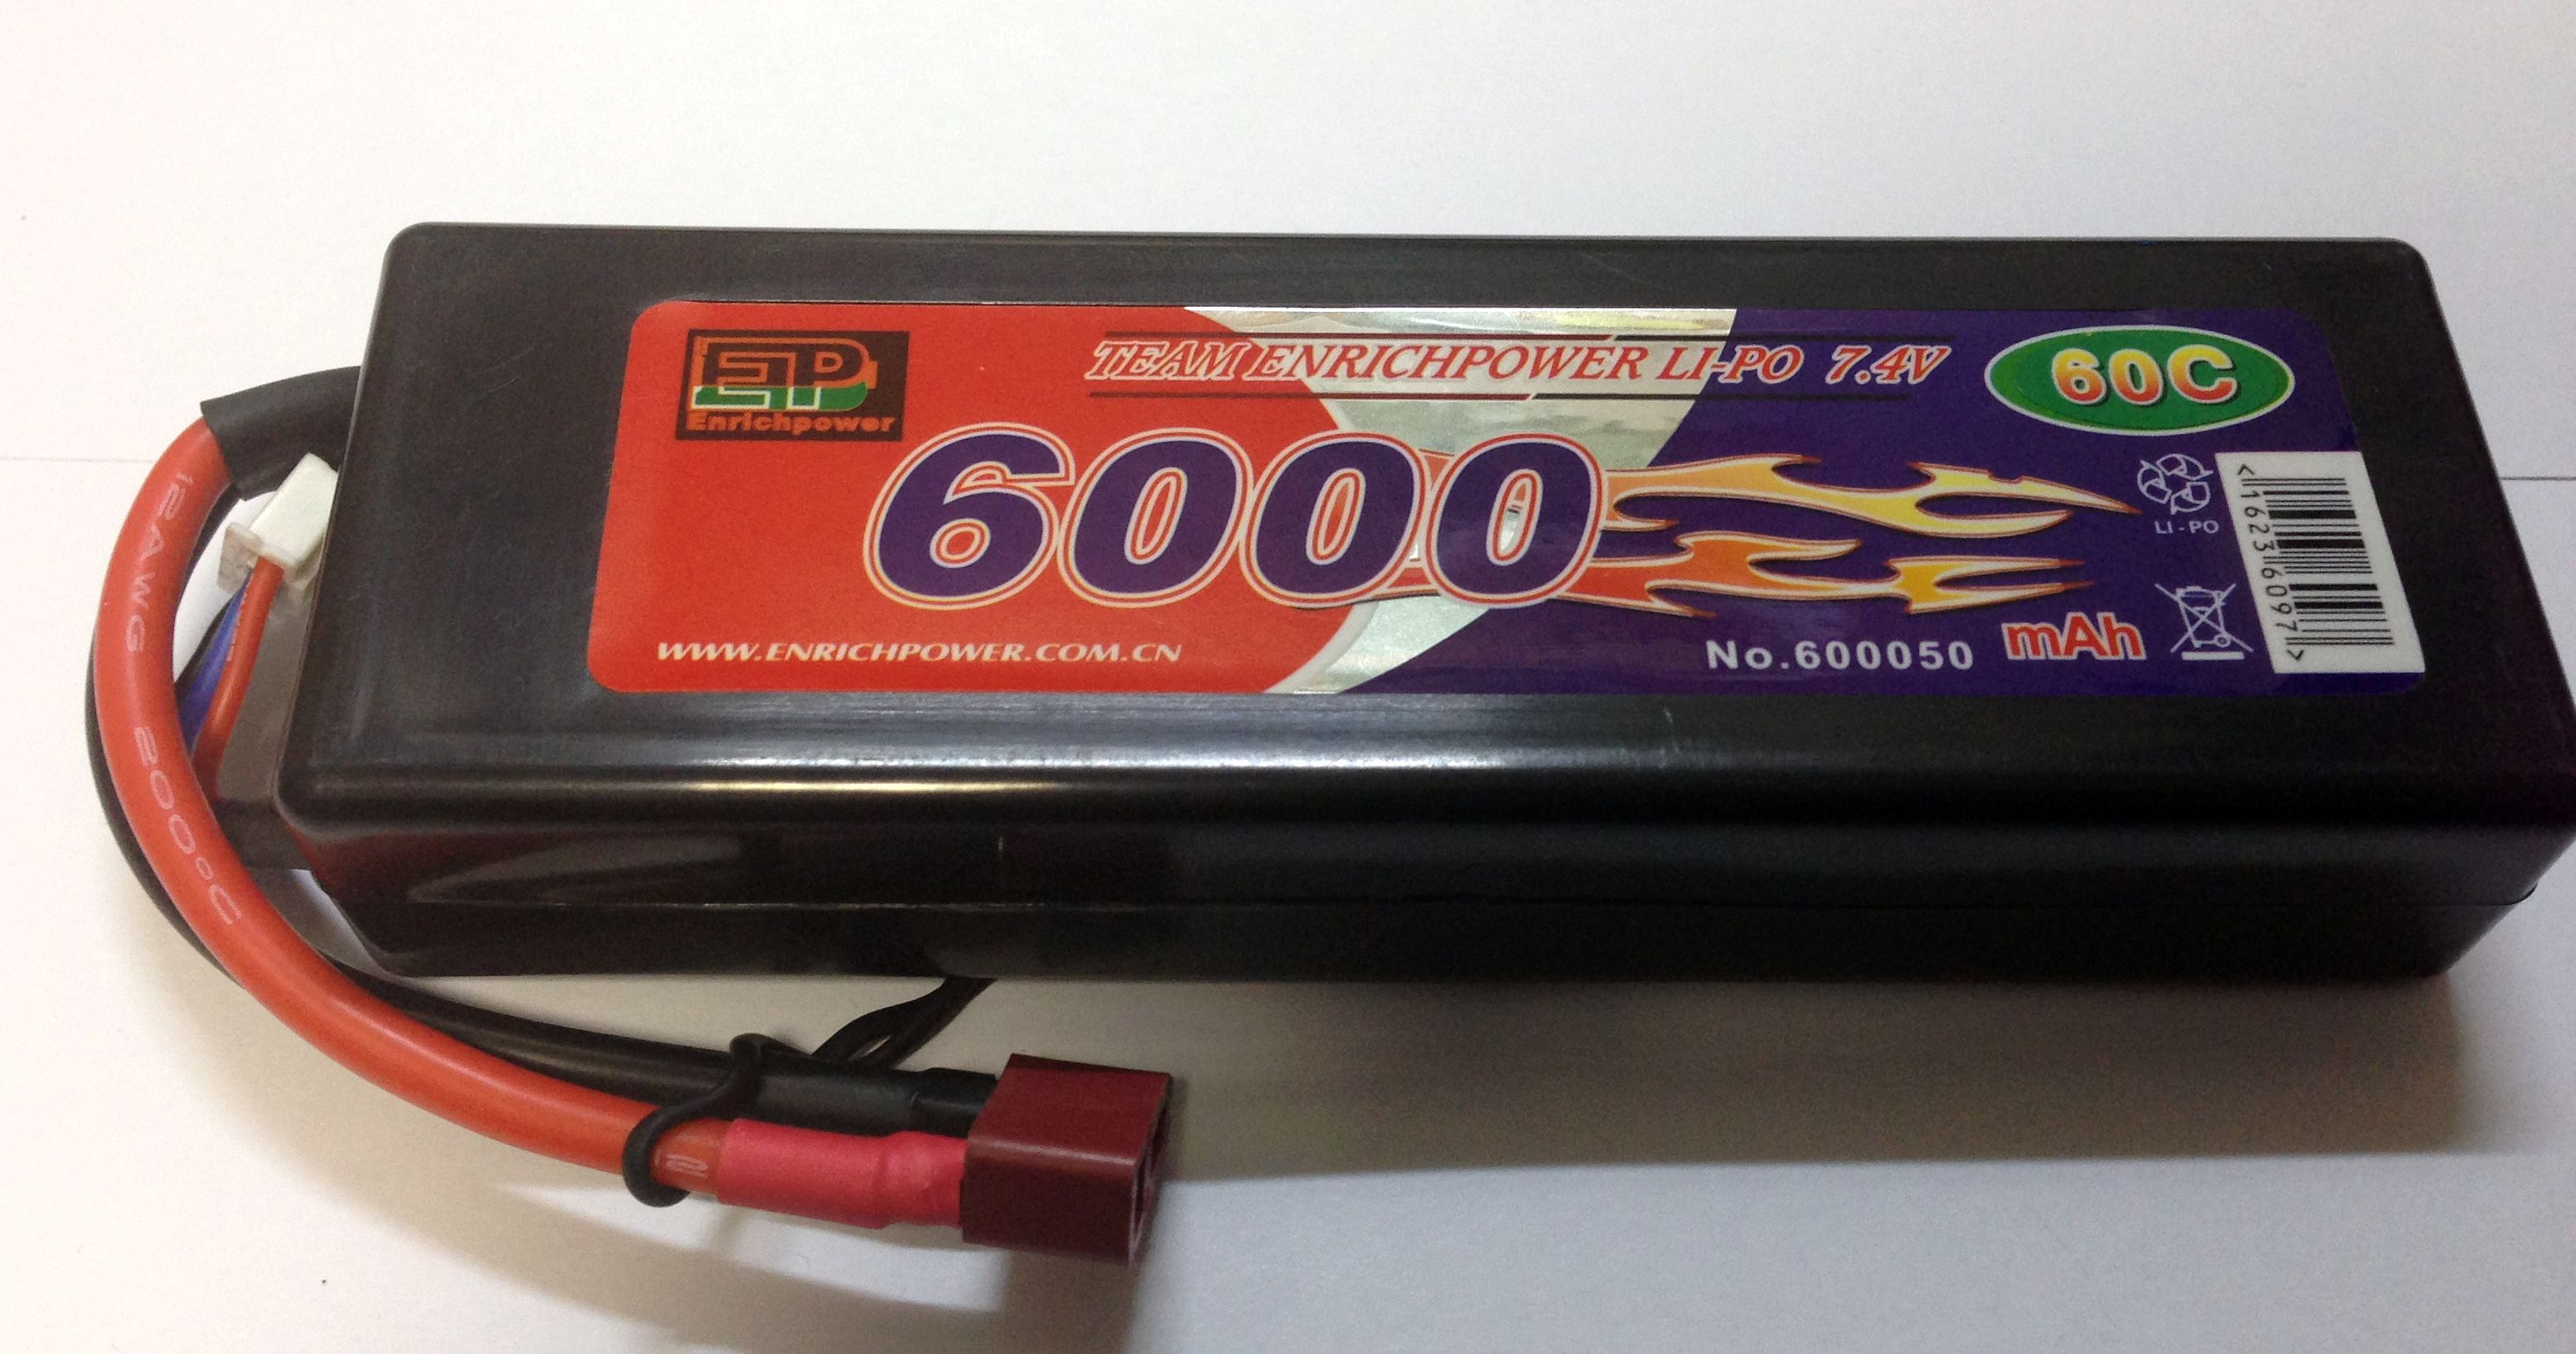 Аккумулятор Li-po High Power 7.4V 2S 6000mAh 60C / DEANS EP60002S60